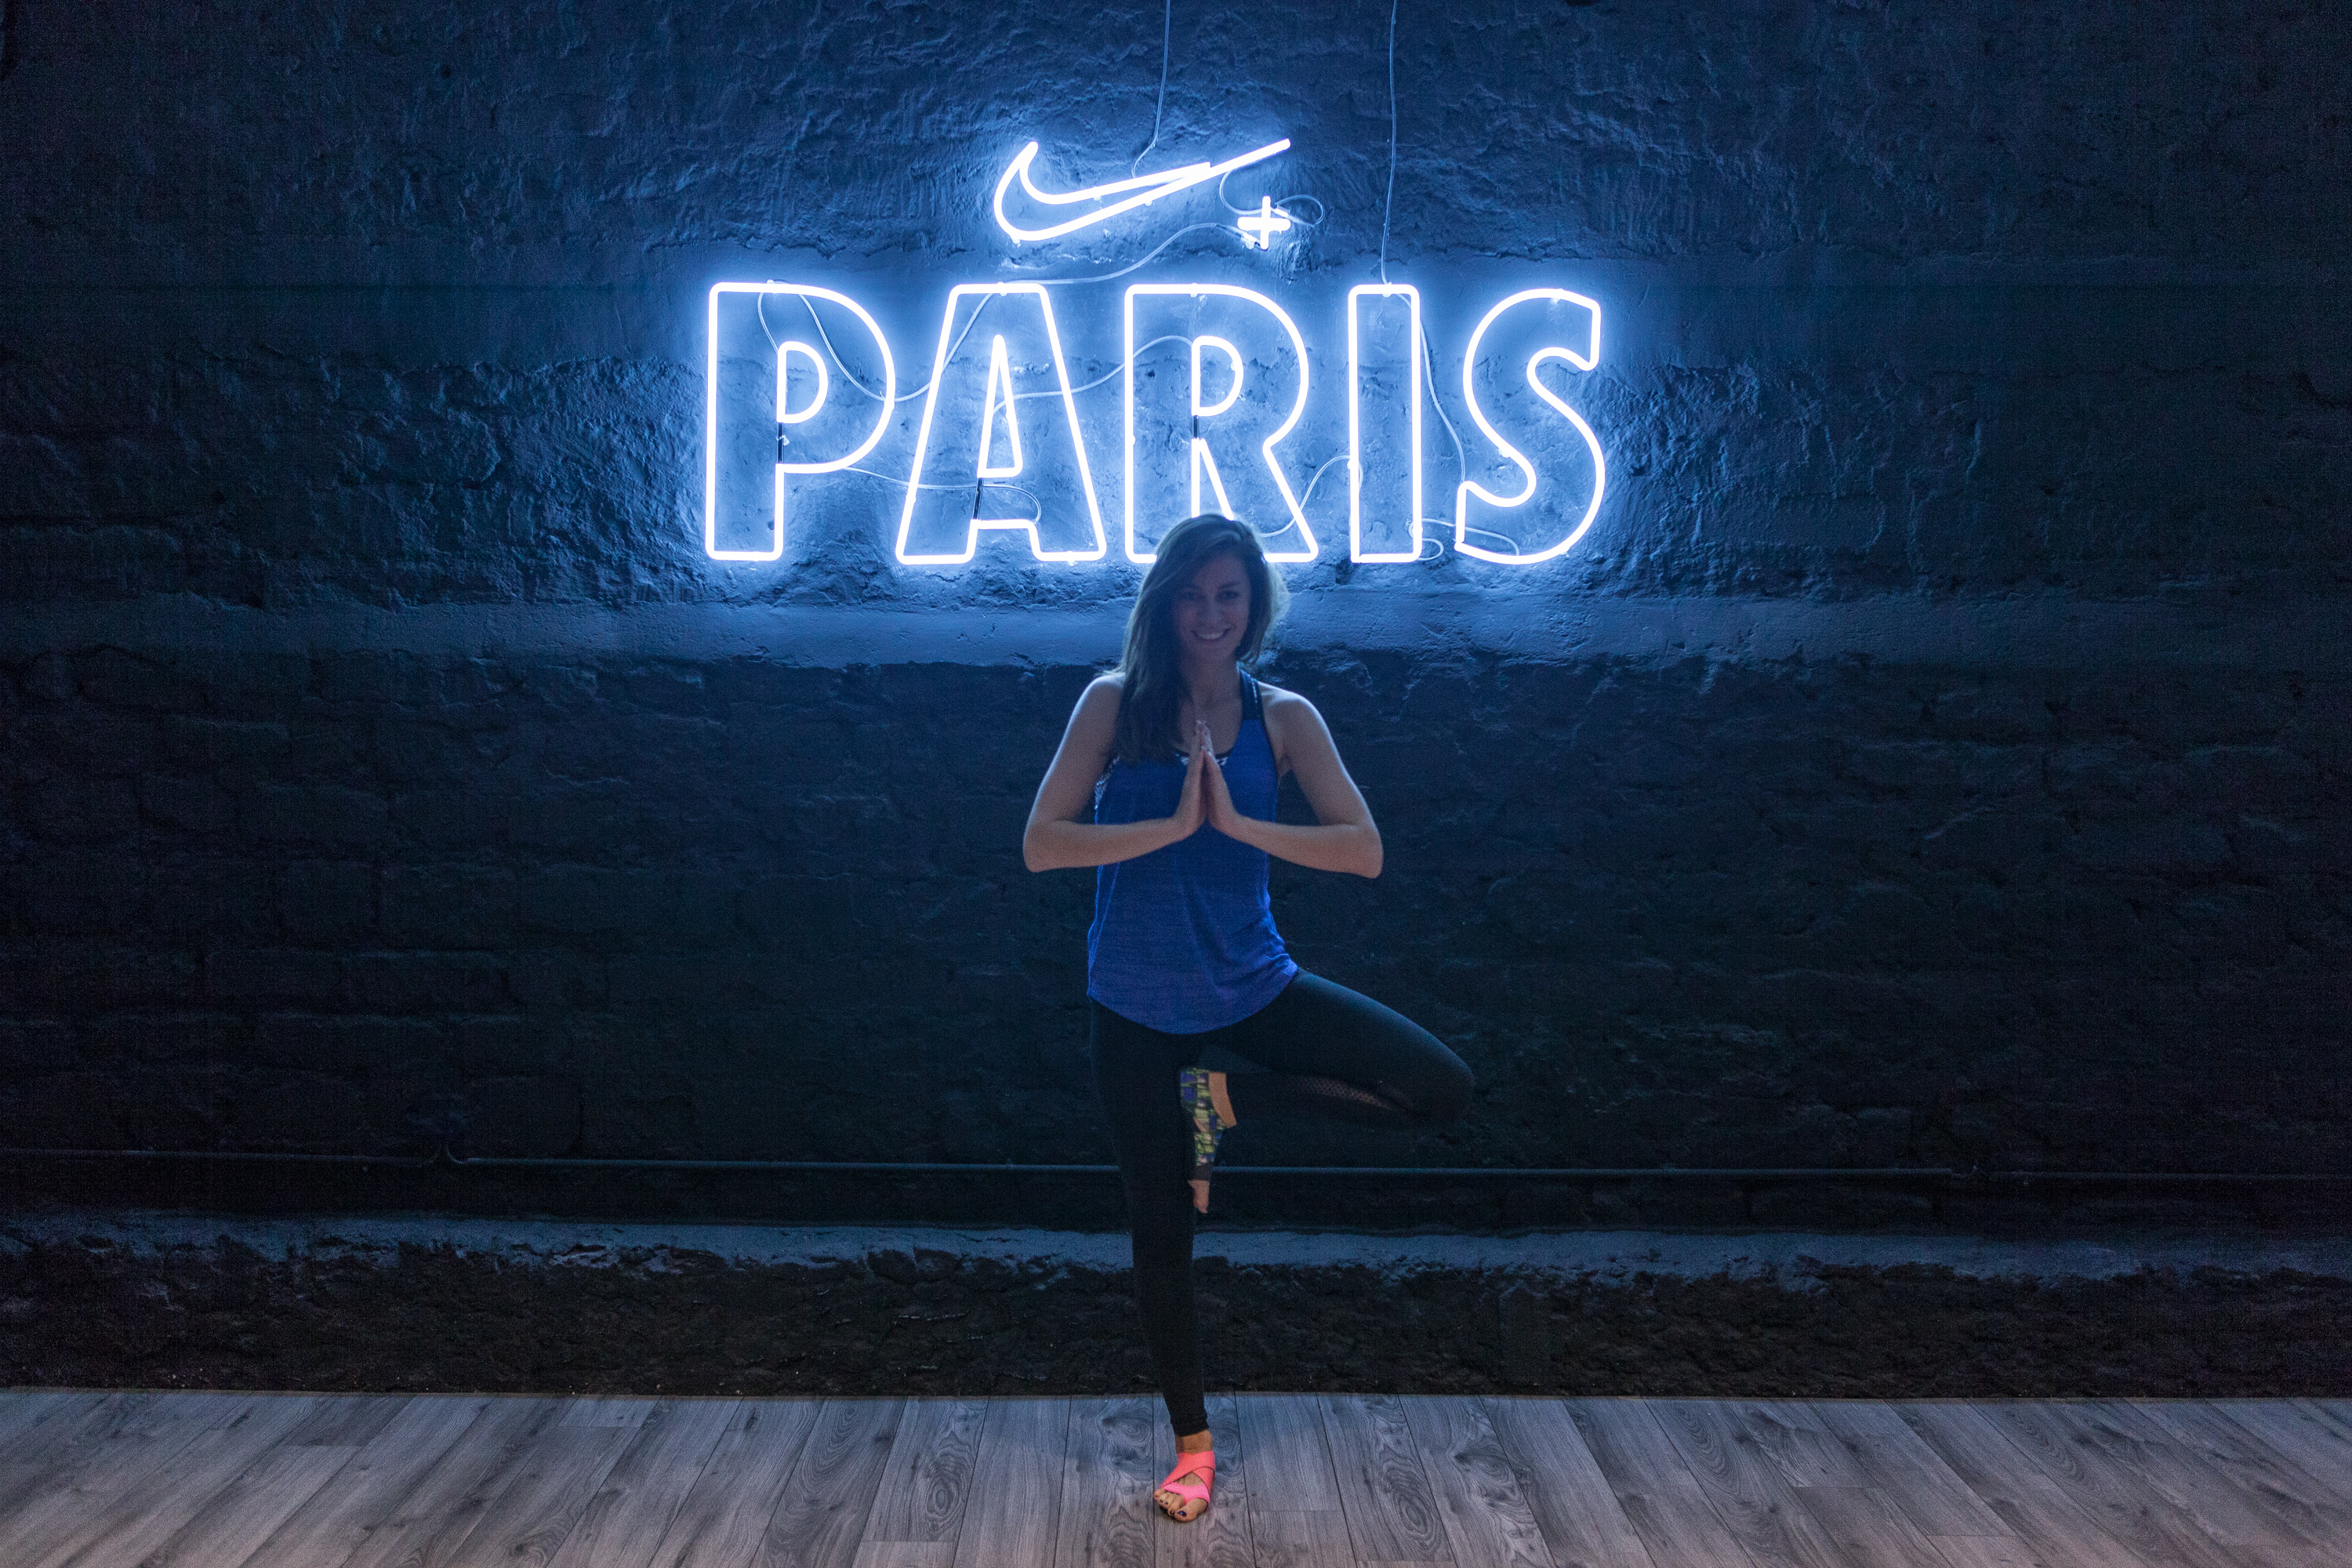 billur saatci, offnegiysem, turkish style blogger, street style, fashion, hopi, video, videopost, nike, nike paris, we run paris, ntc, nike concierge, running, training, yoga, paris, billur paris diary, travel, off nereye gitsem